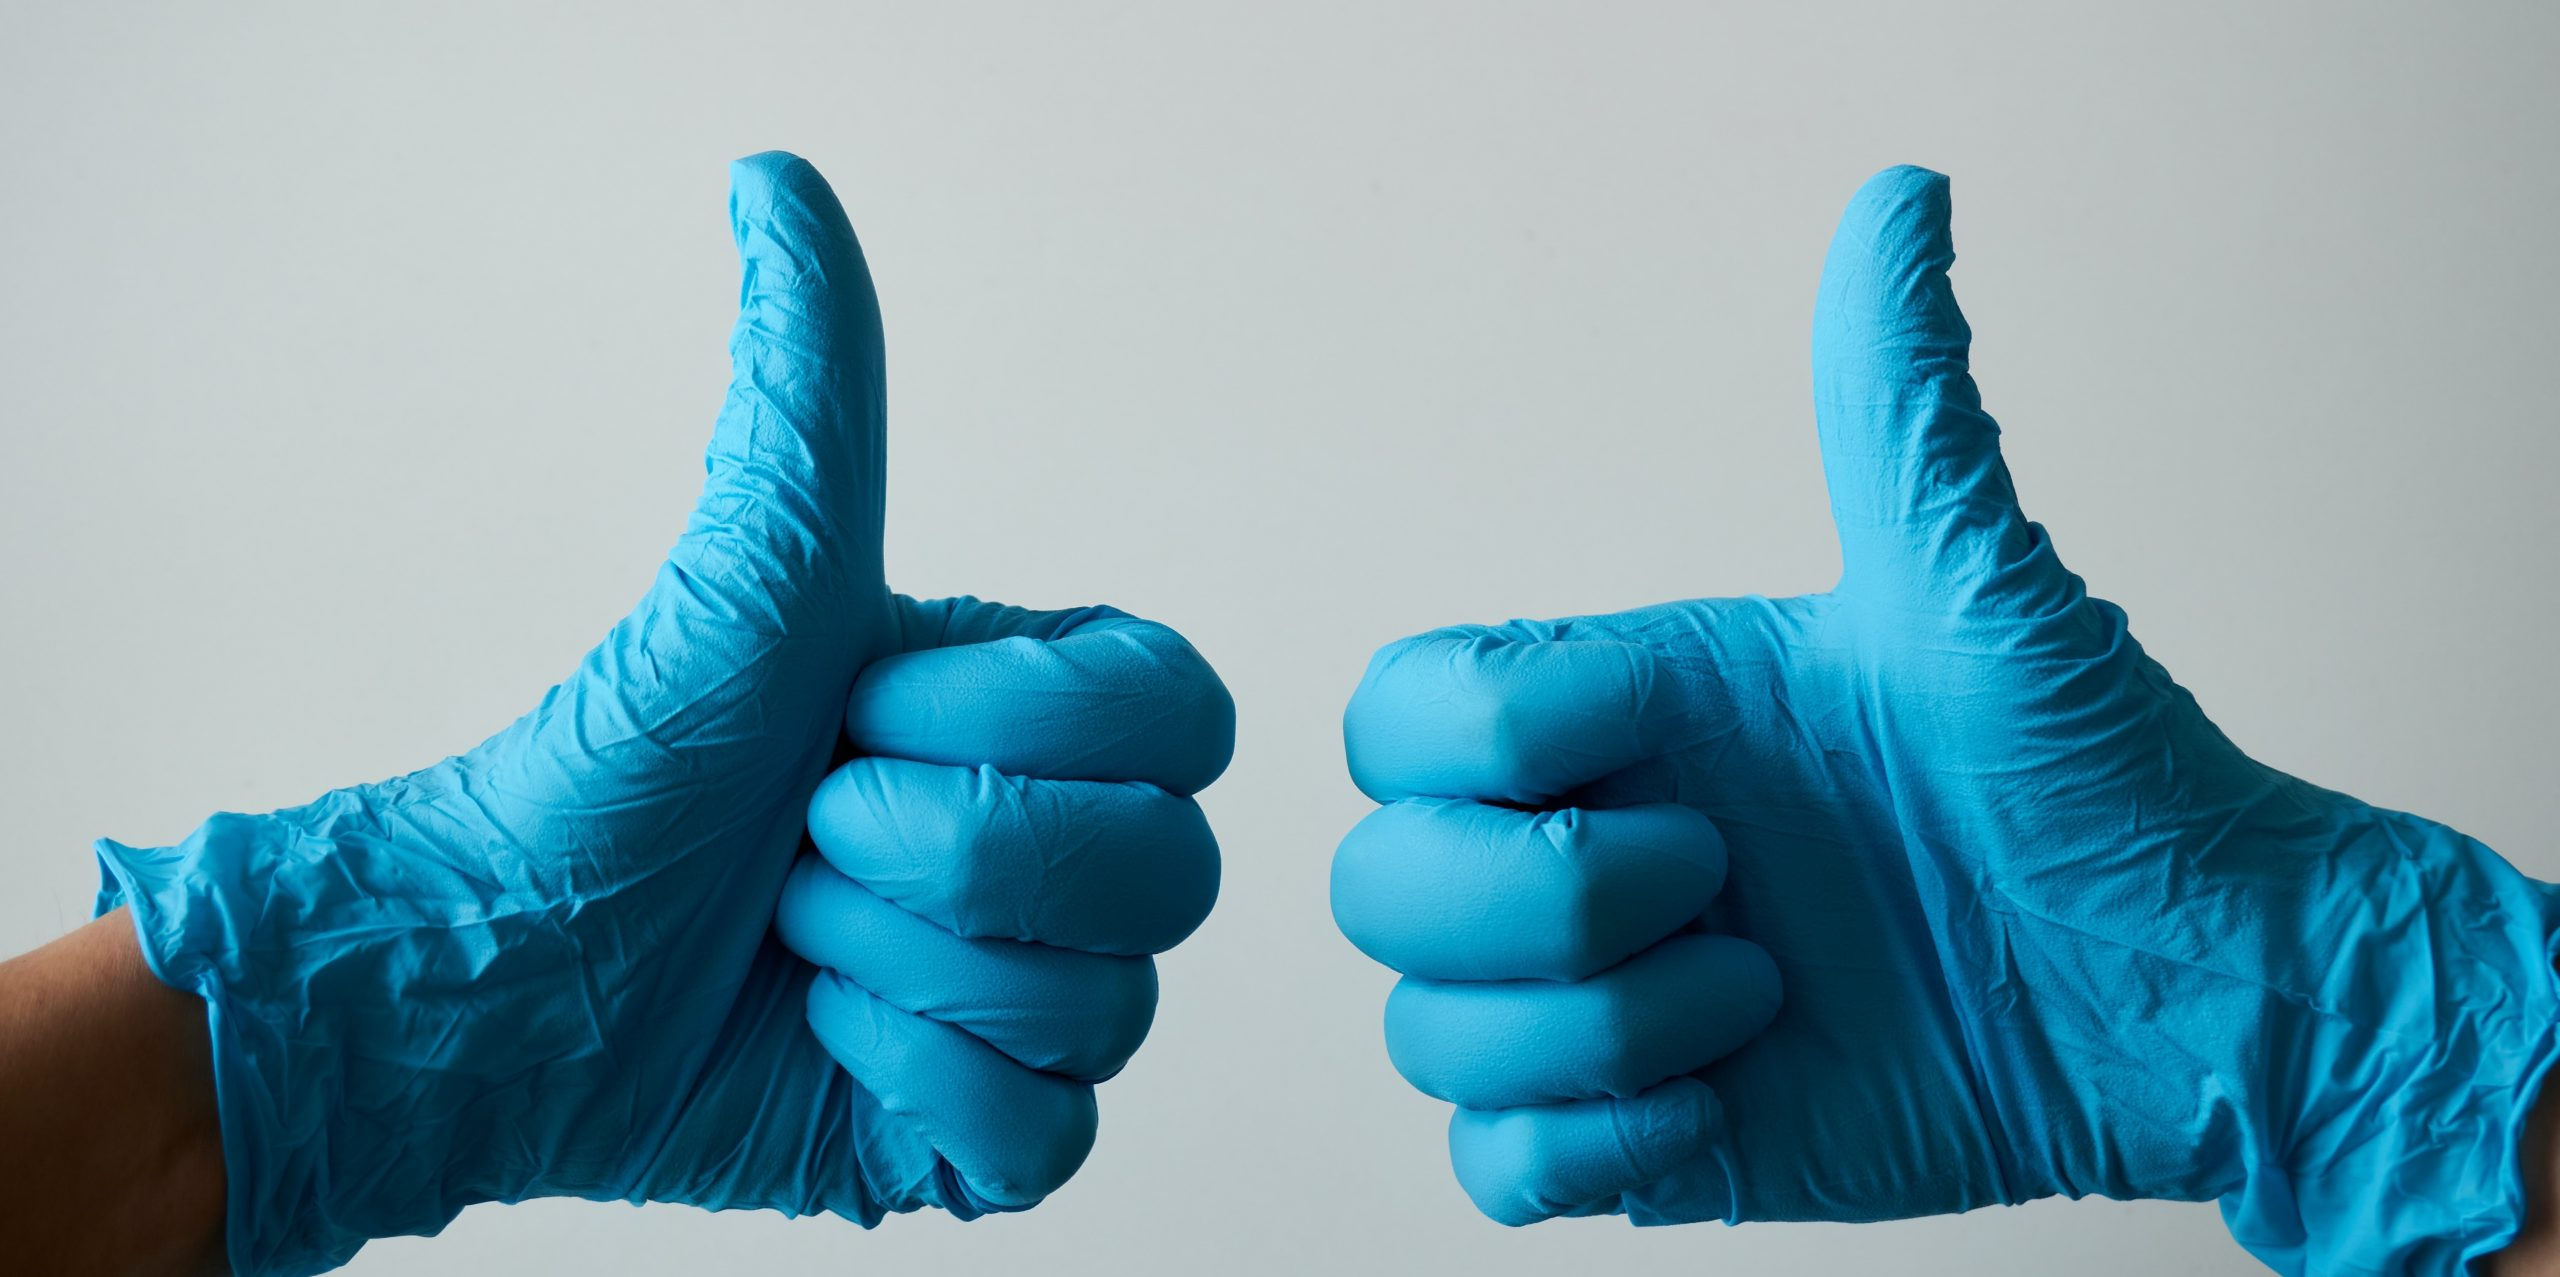 2 thumbs up